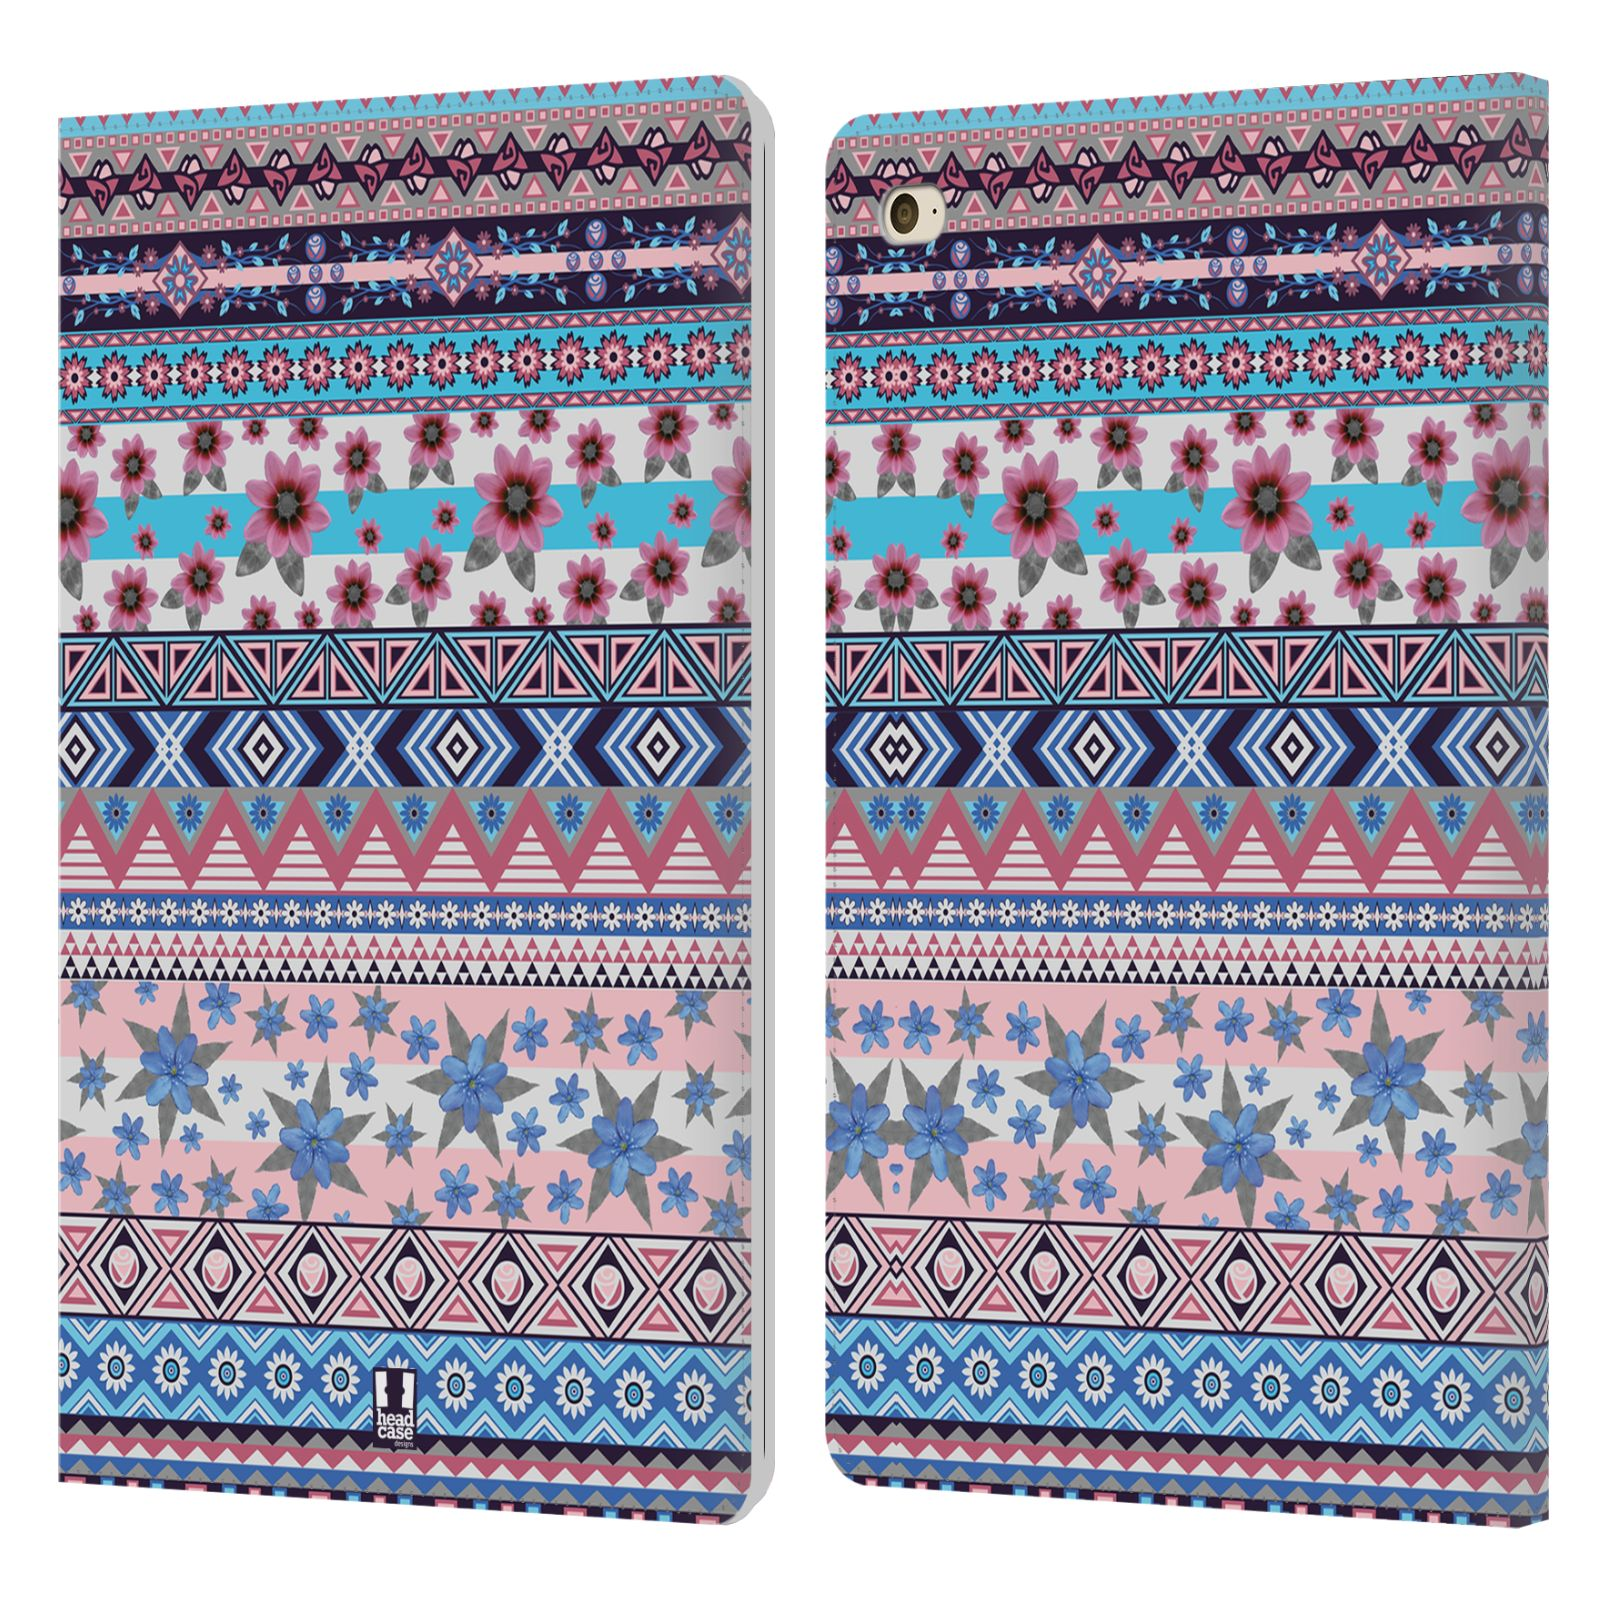 HEAD-CASE-DESIGNS-FLORAL-AZTECA-FUNDA-DE-LIBRO-CUERO-PARA-APPLE-iPAD-MINI-4